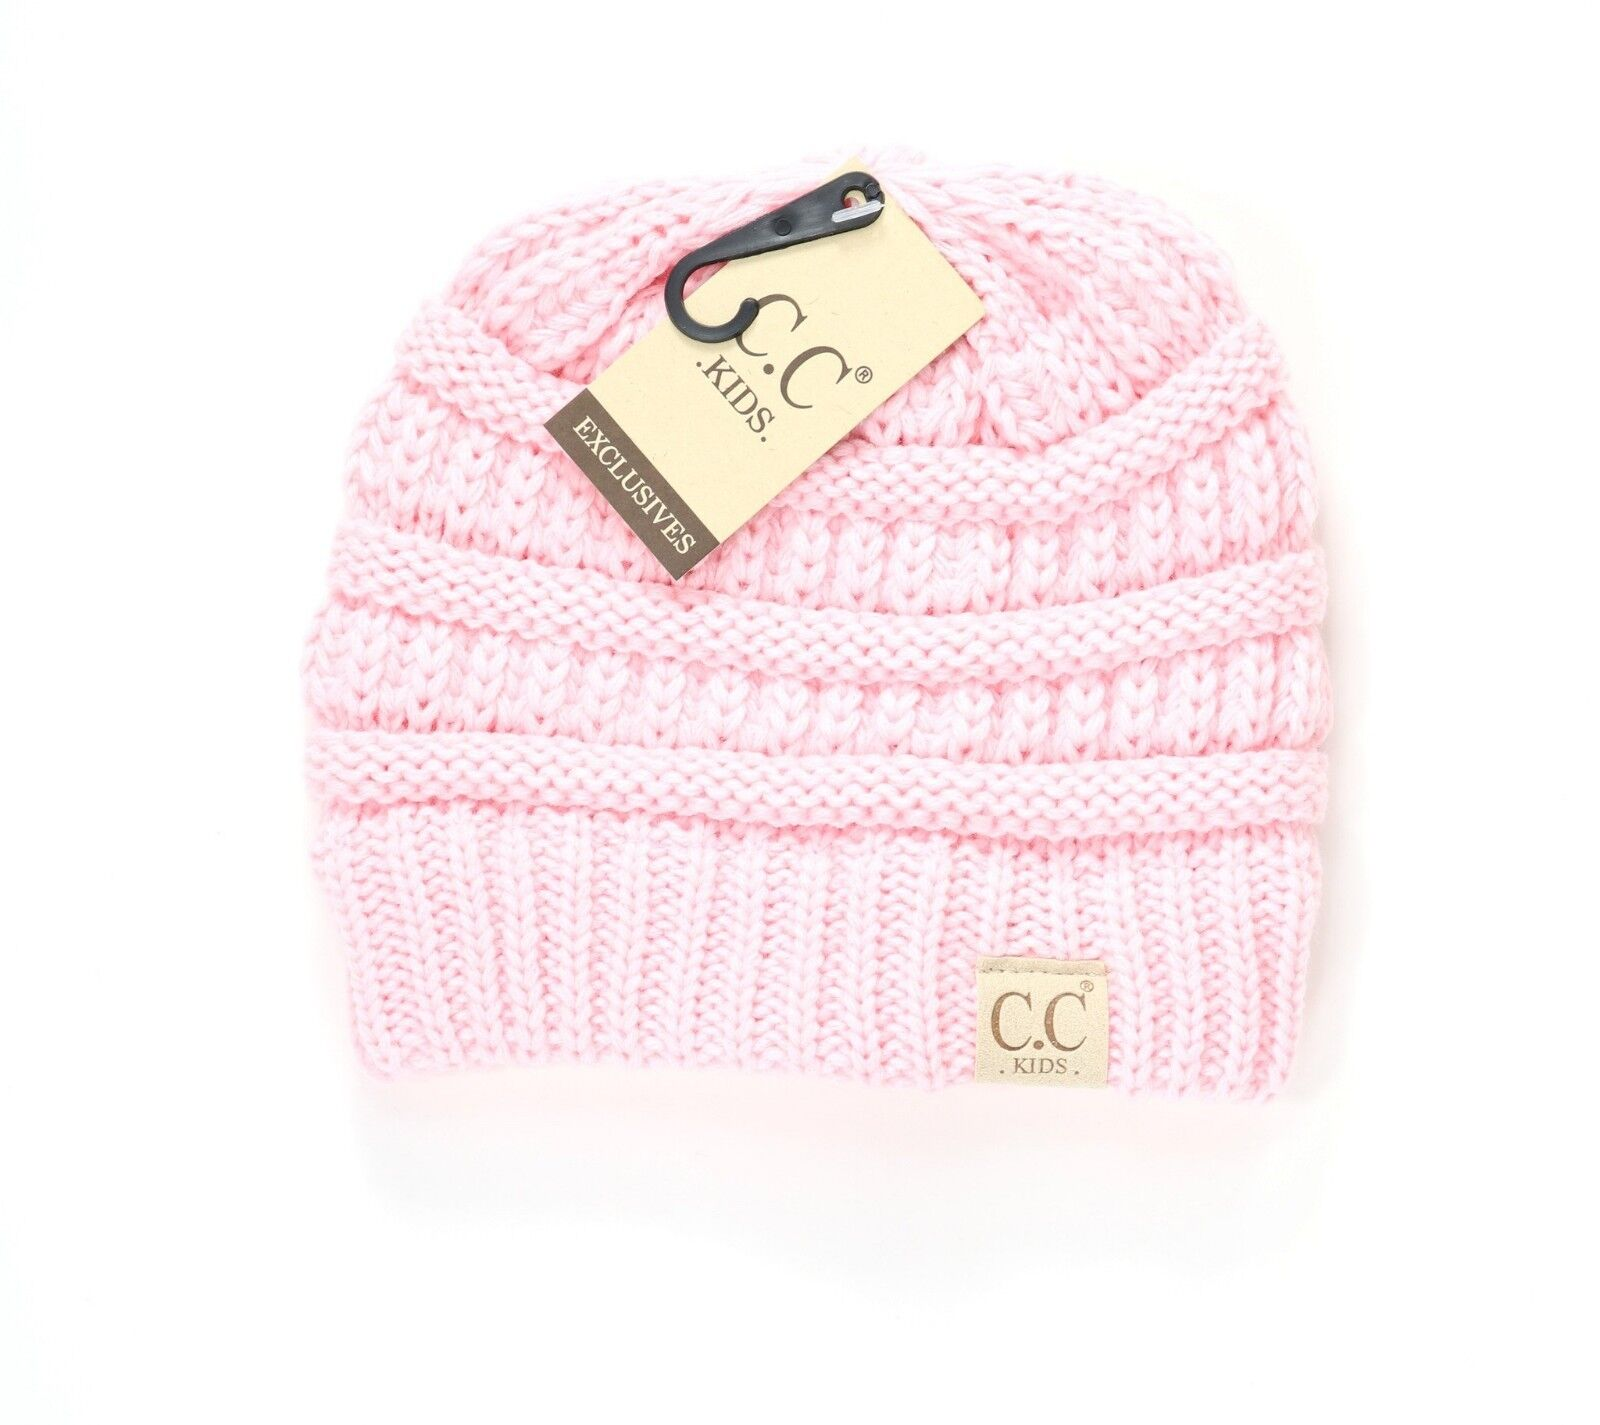 92922ad73 Authentic CC Kids Beanie Hats Baby Toddler Ribbed Knit Children Winter Cap